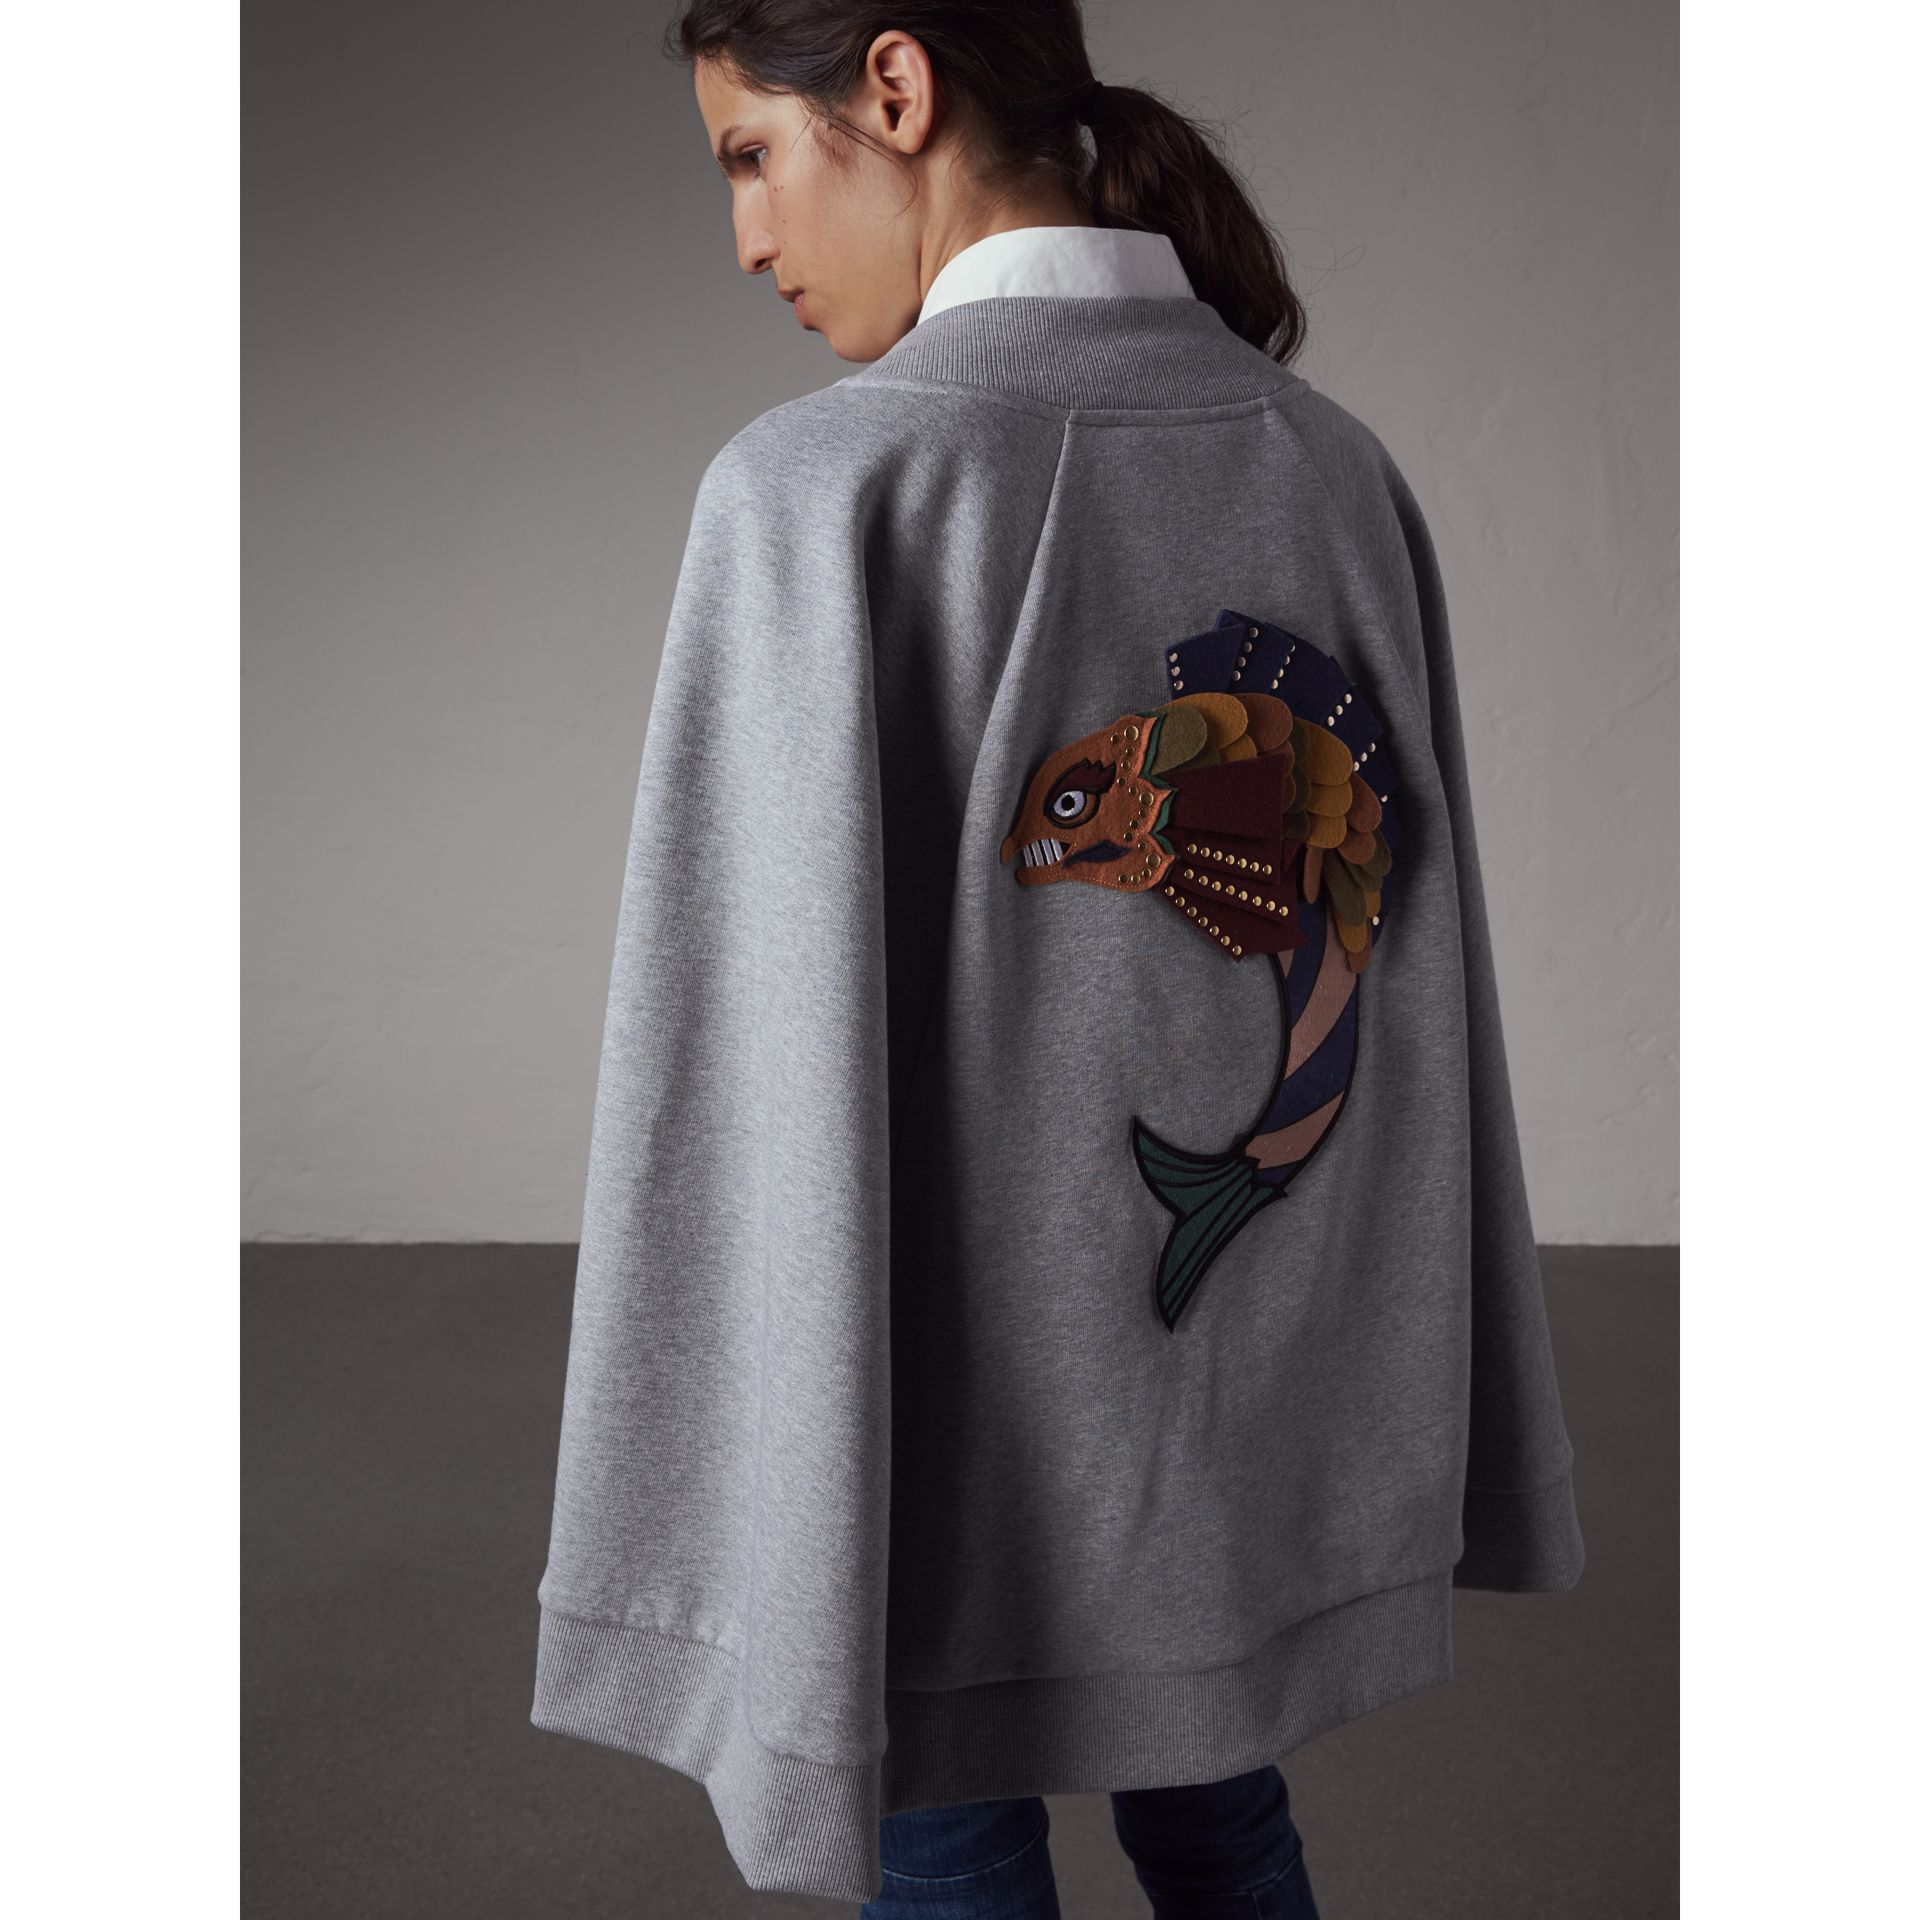 Beasts Appliqué Sweatshirt Cape in Pale Grey Melange - Women | Burberry Singapore - gallery image 3